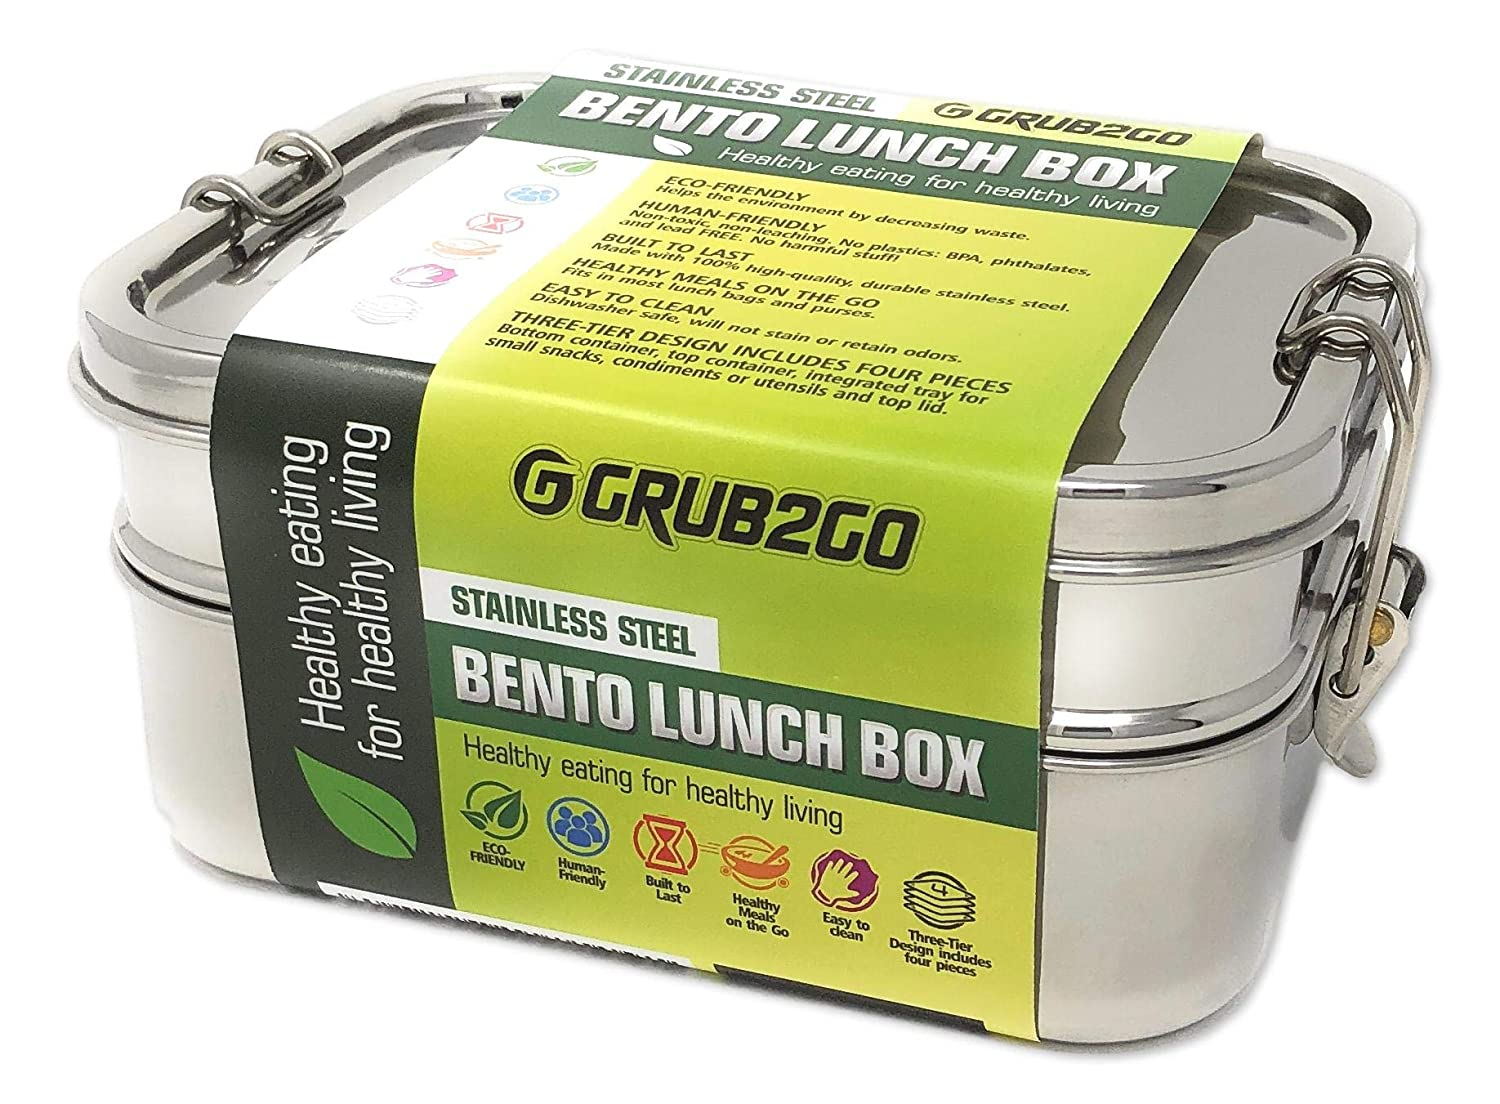 Stainless Steel Bento Lunch Box w/SECURLOCK Lids (Upgraded 2019 Model) by GRUB2GO + FREE FOOD IDEAS GUIDE | Premium 3-Layer 1600 ML Metal Tiffin Container